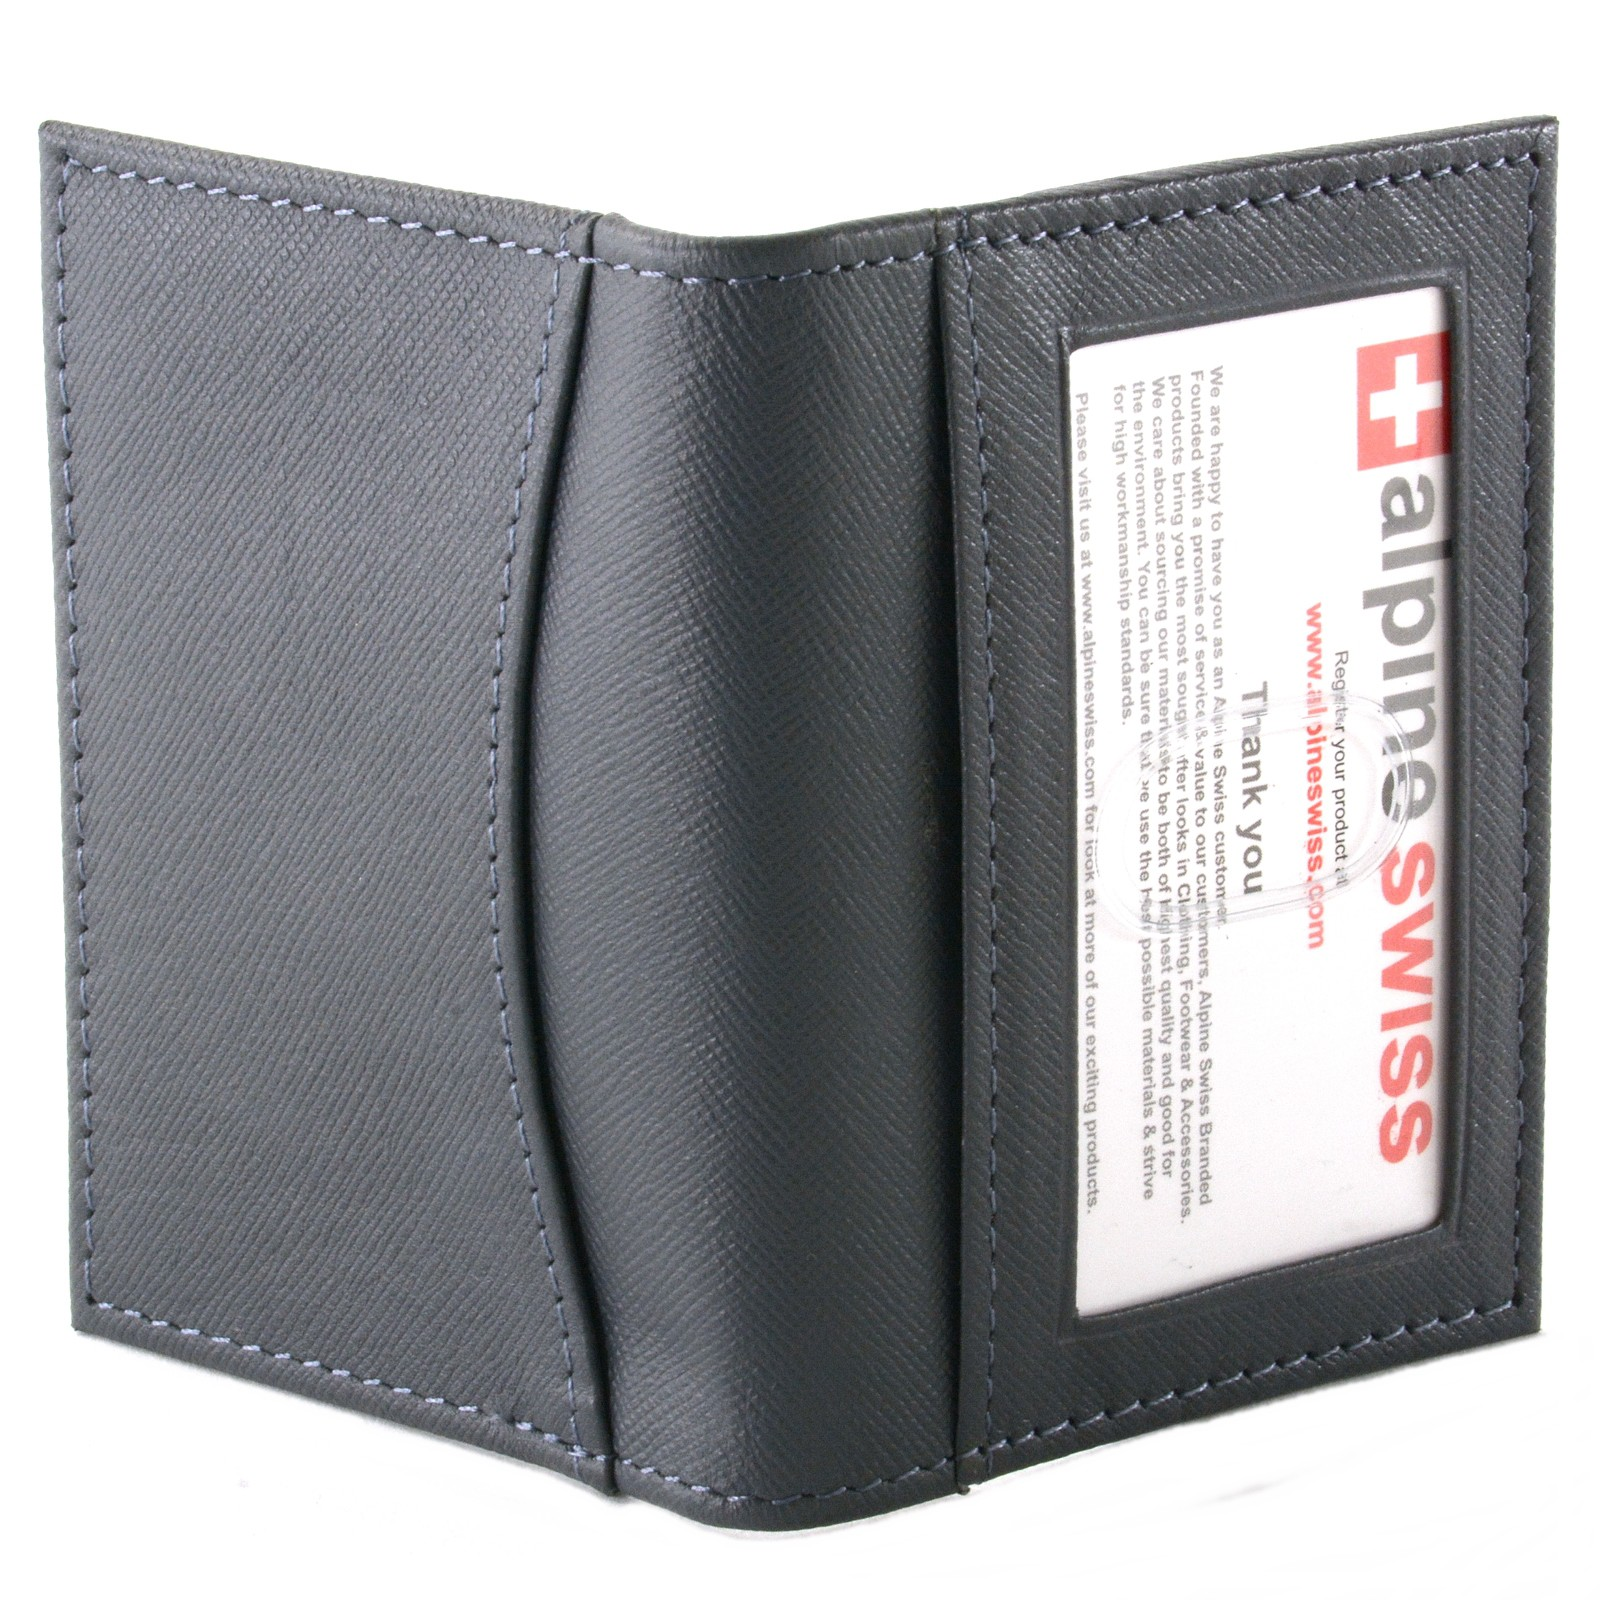 Alpine swiss thin front pocket wallet business card case 2 for 2 id window wallet